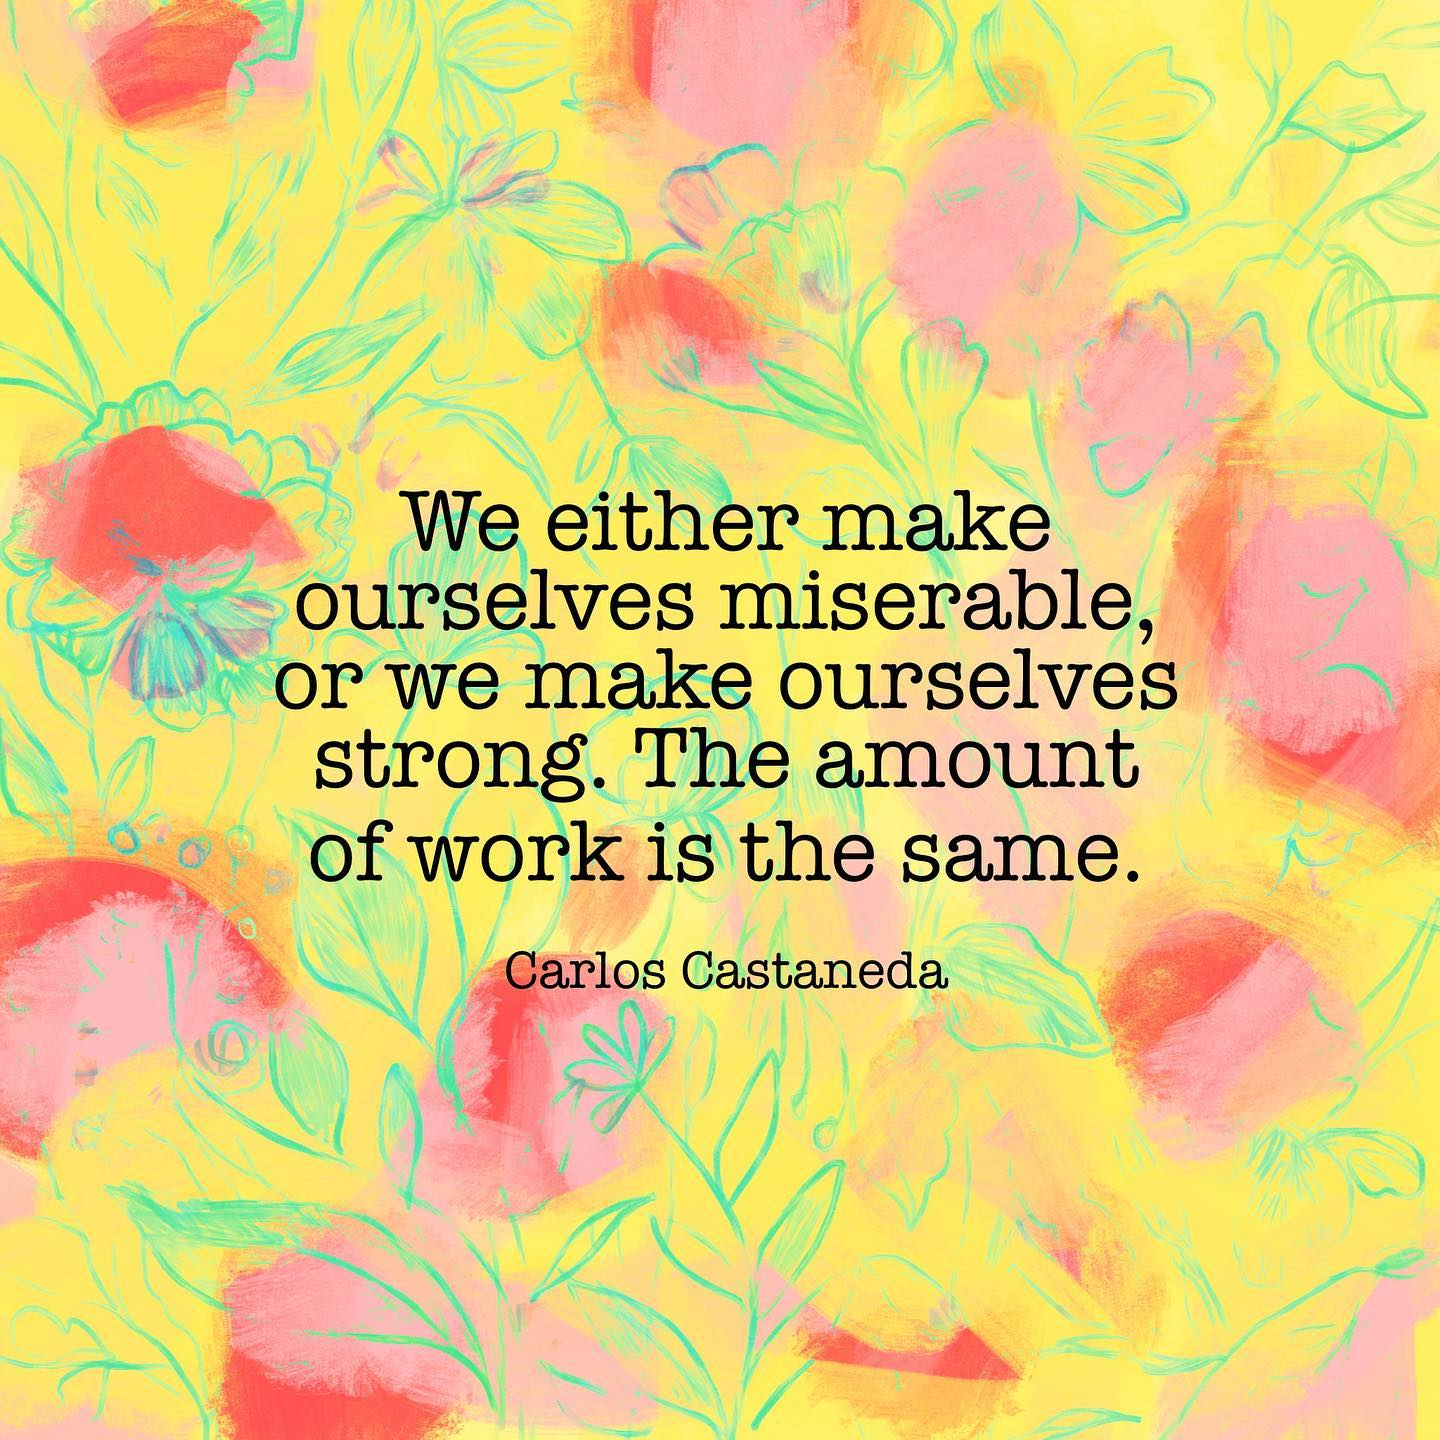 We either make ourselves miserable, or we make ourselves strong. The amount of work is the same. ~ Carlos Castaneda